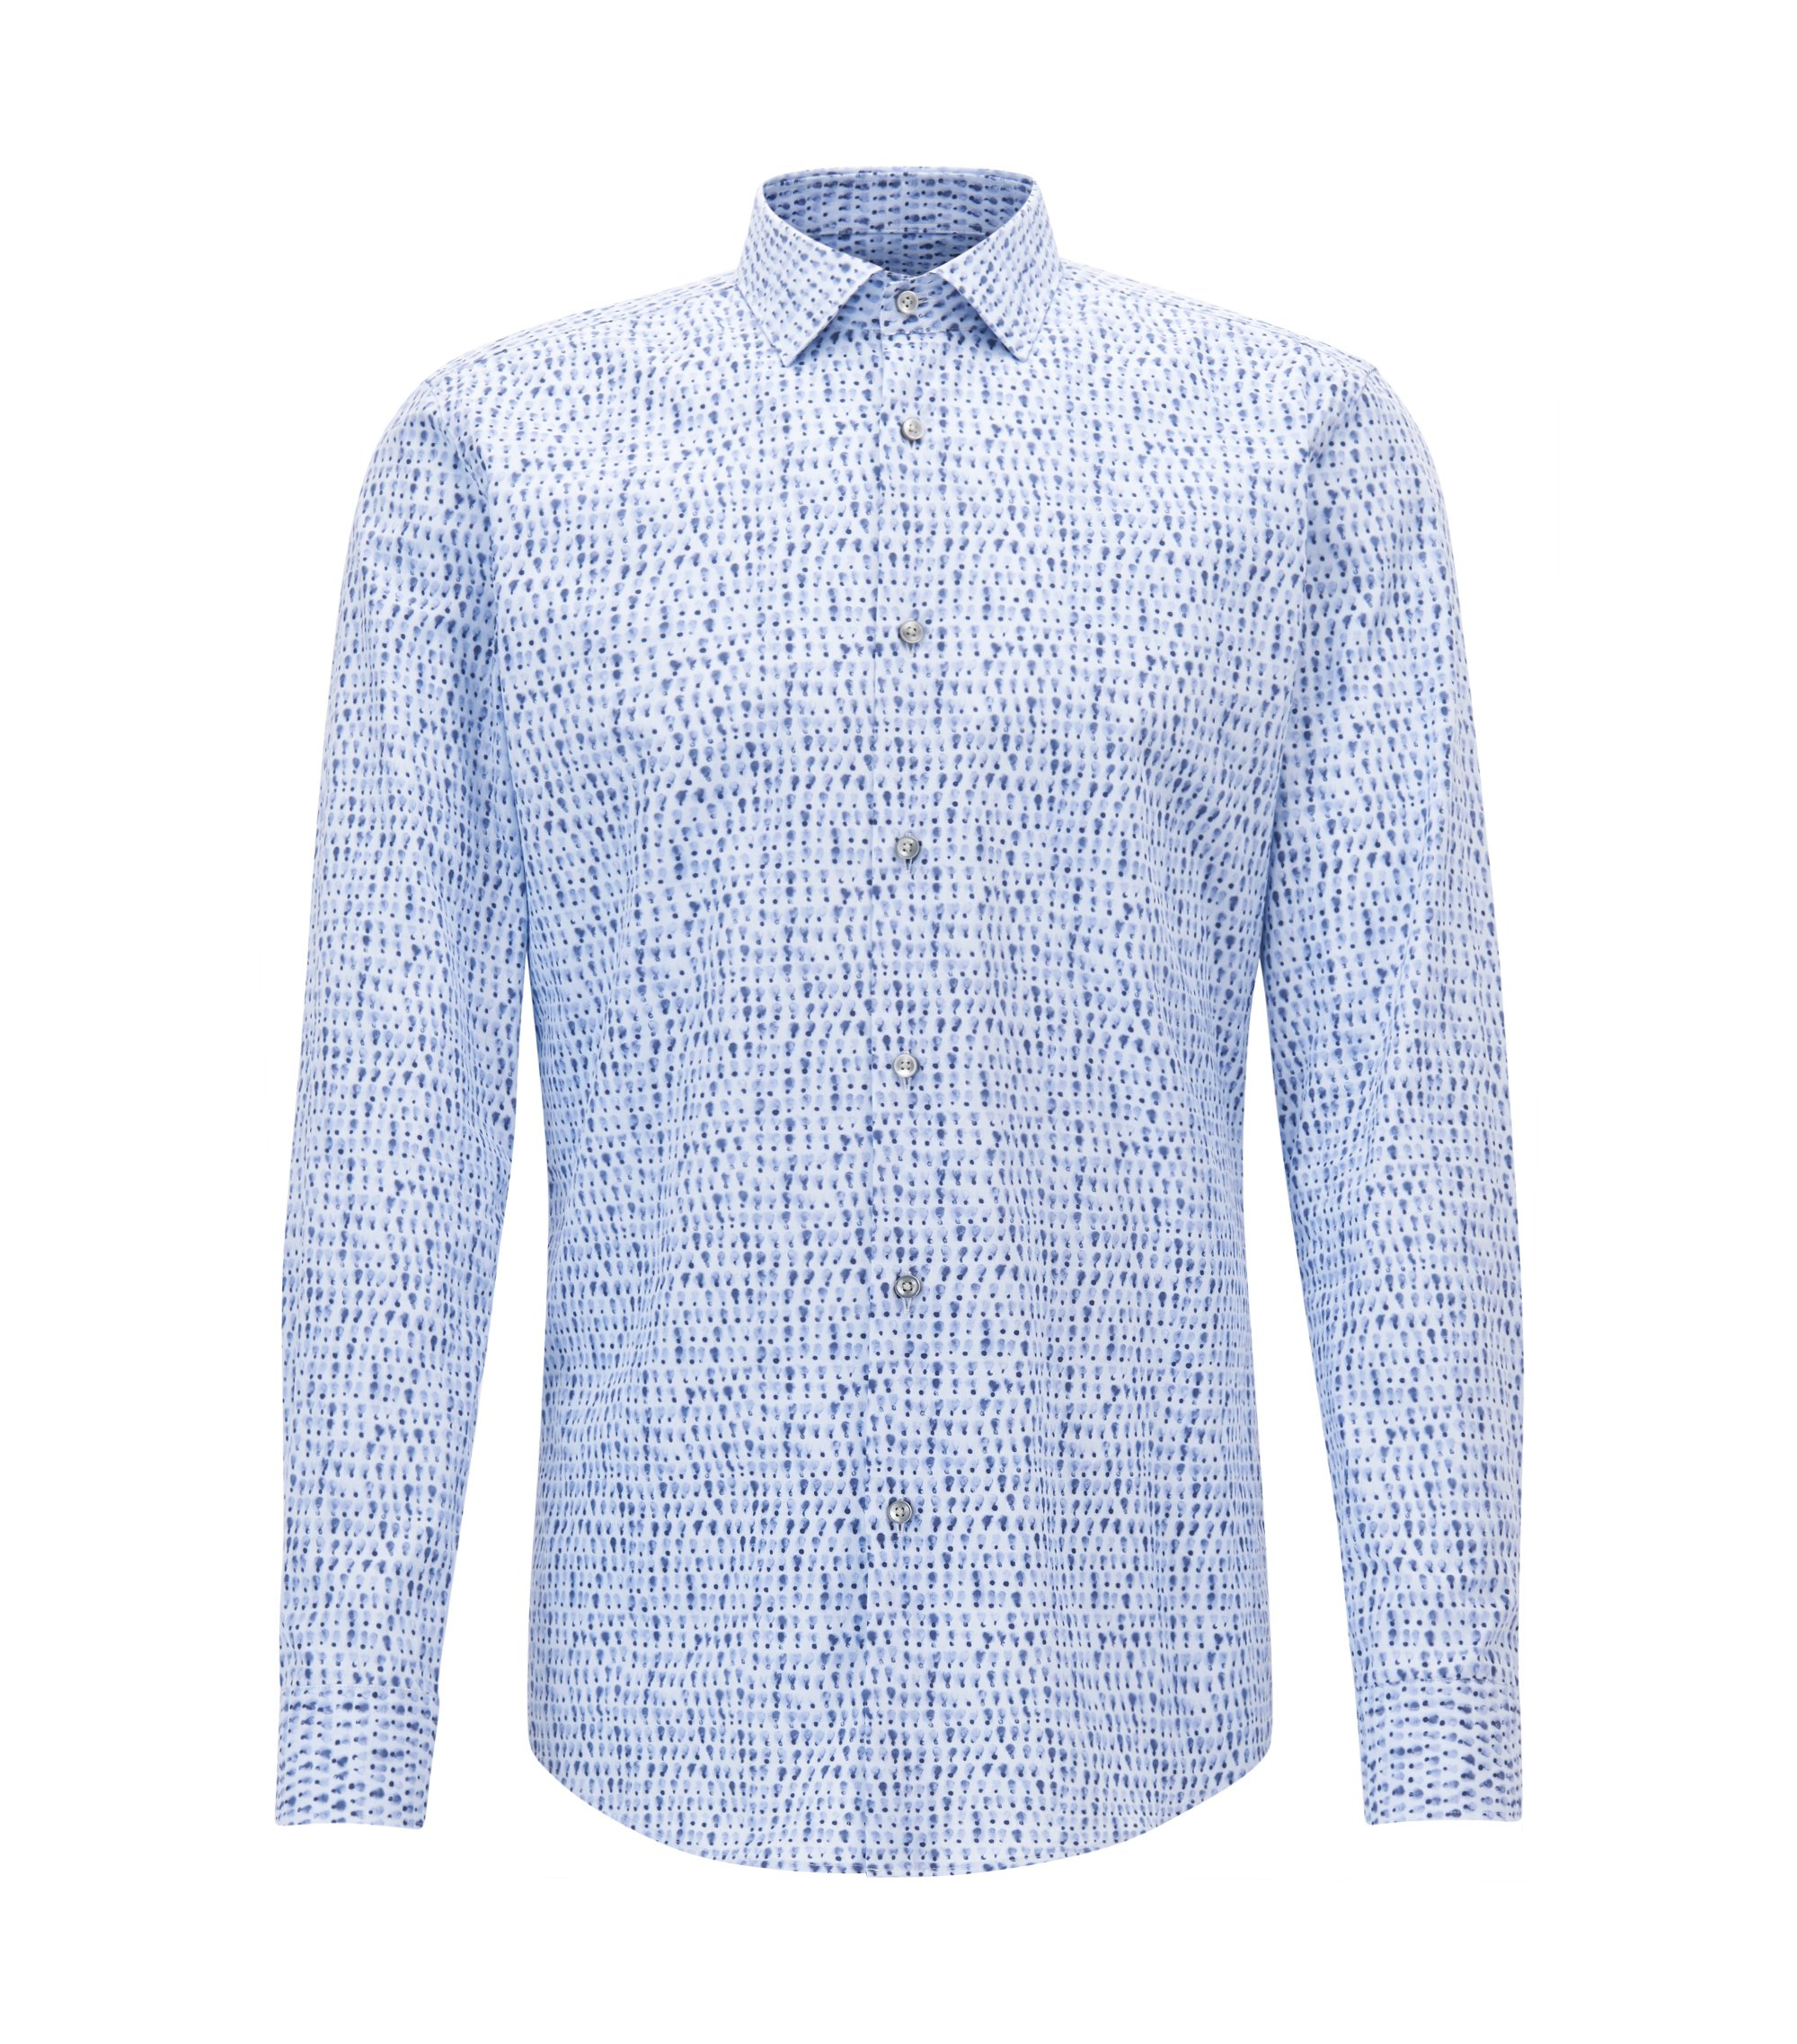 Patterned Cotton Dress Shirt, Slim Fit | Ismo, Light Blue